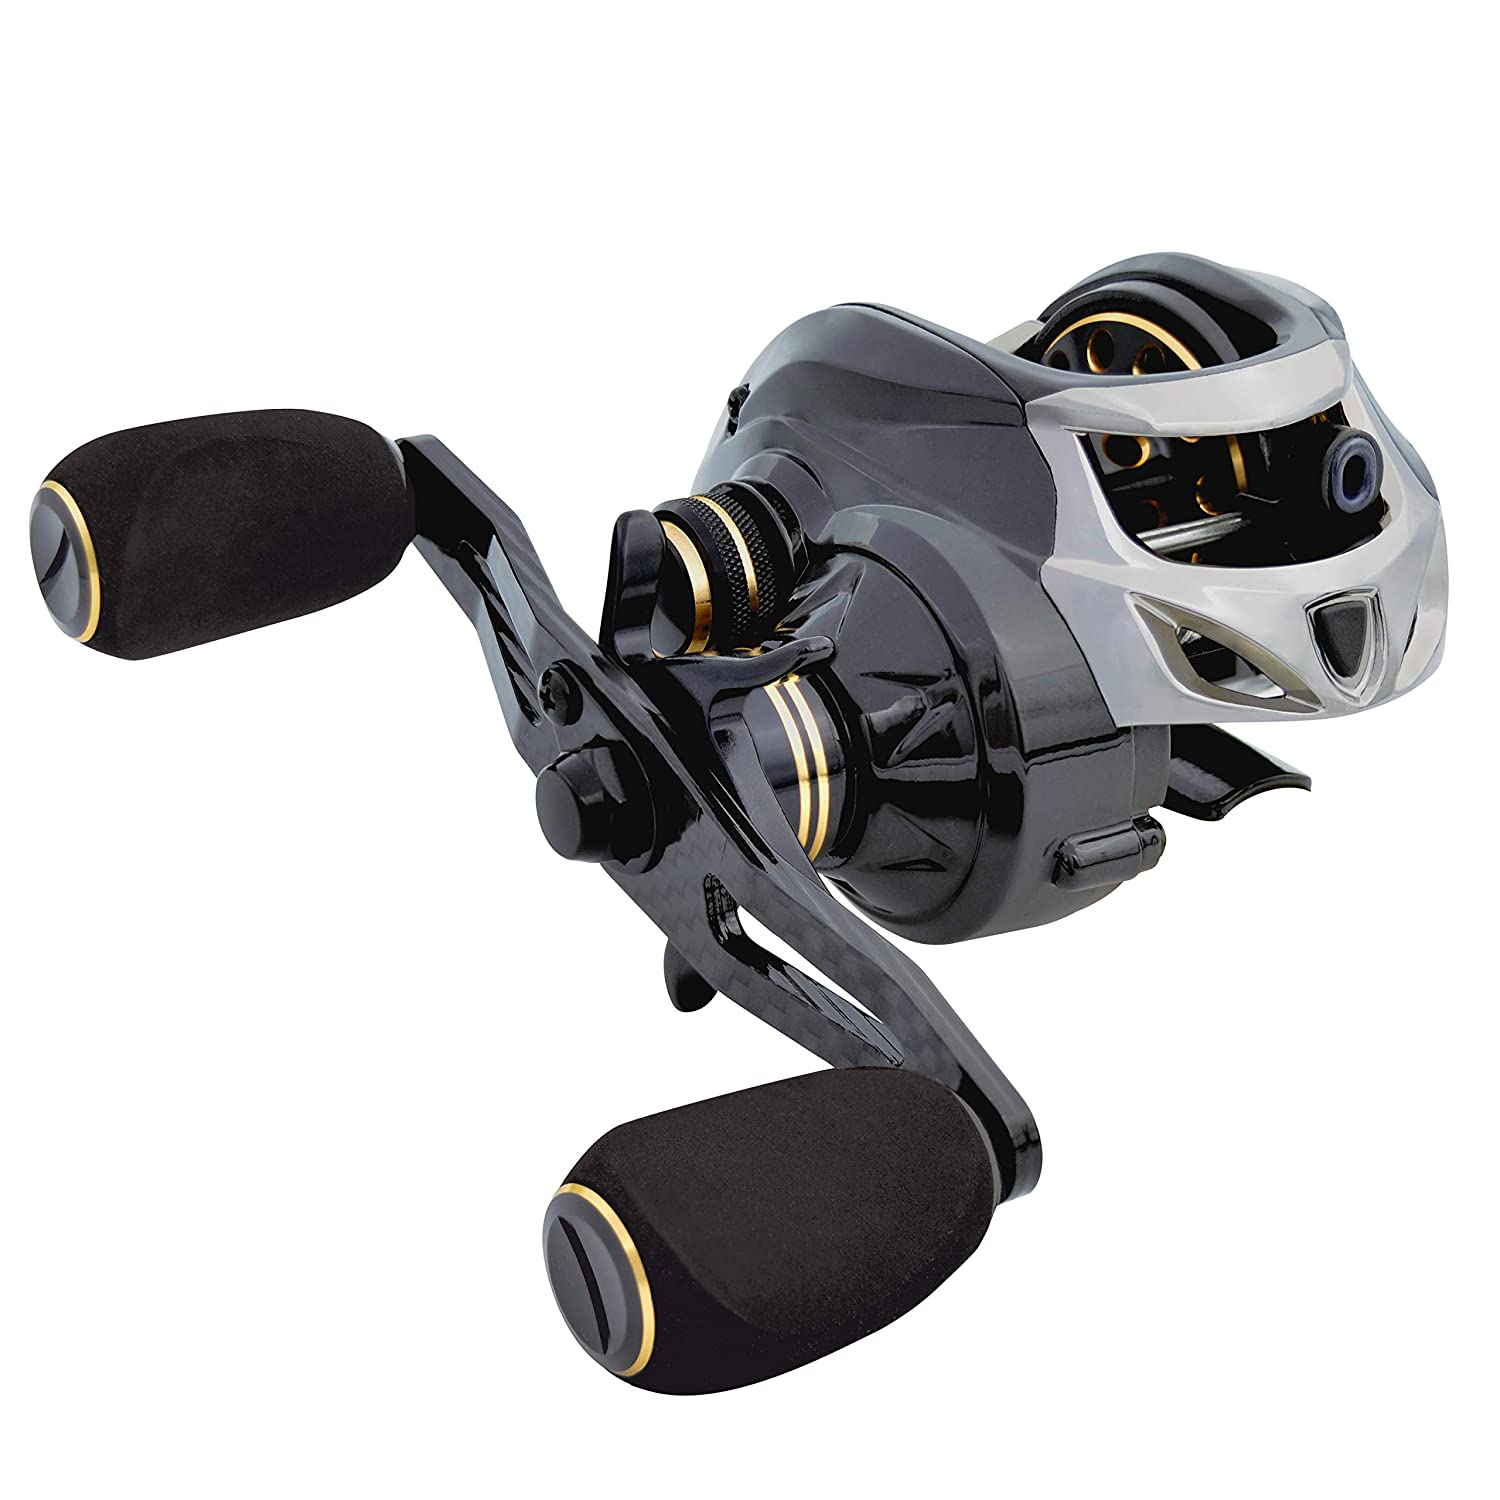 Fishdrops Baitcasting Reels Double Brake Systems Carbon Fiber Body and Handle Baitcaster Reels Only 167g High Speed 7.2 Gear Ratio Ultra Smooth and Light Weight